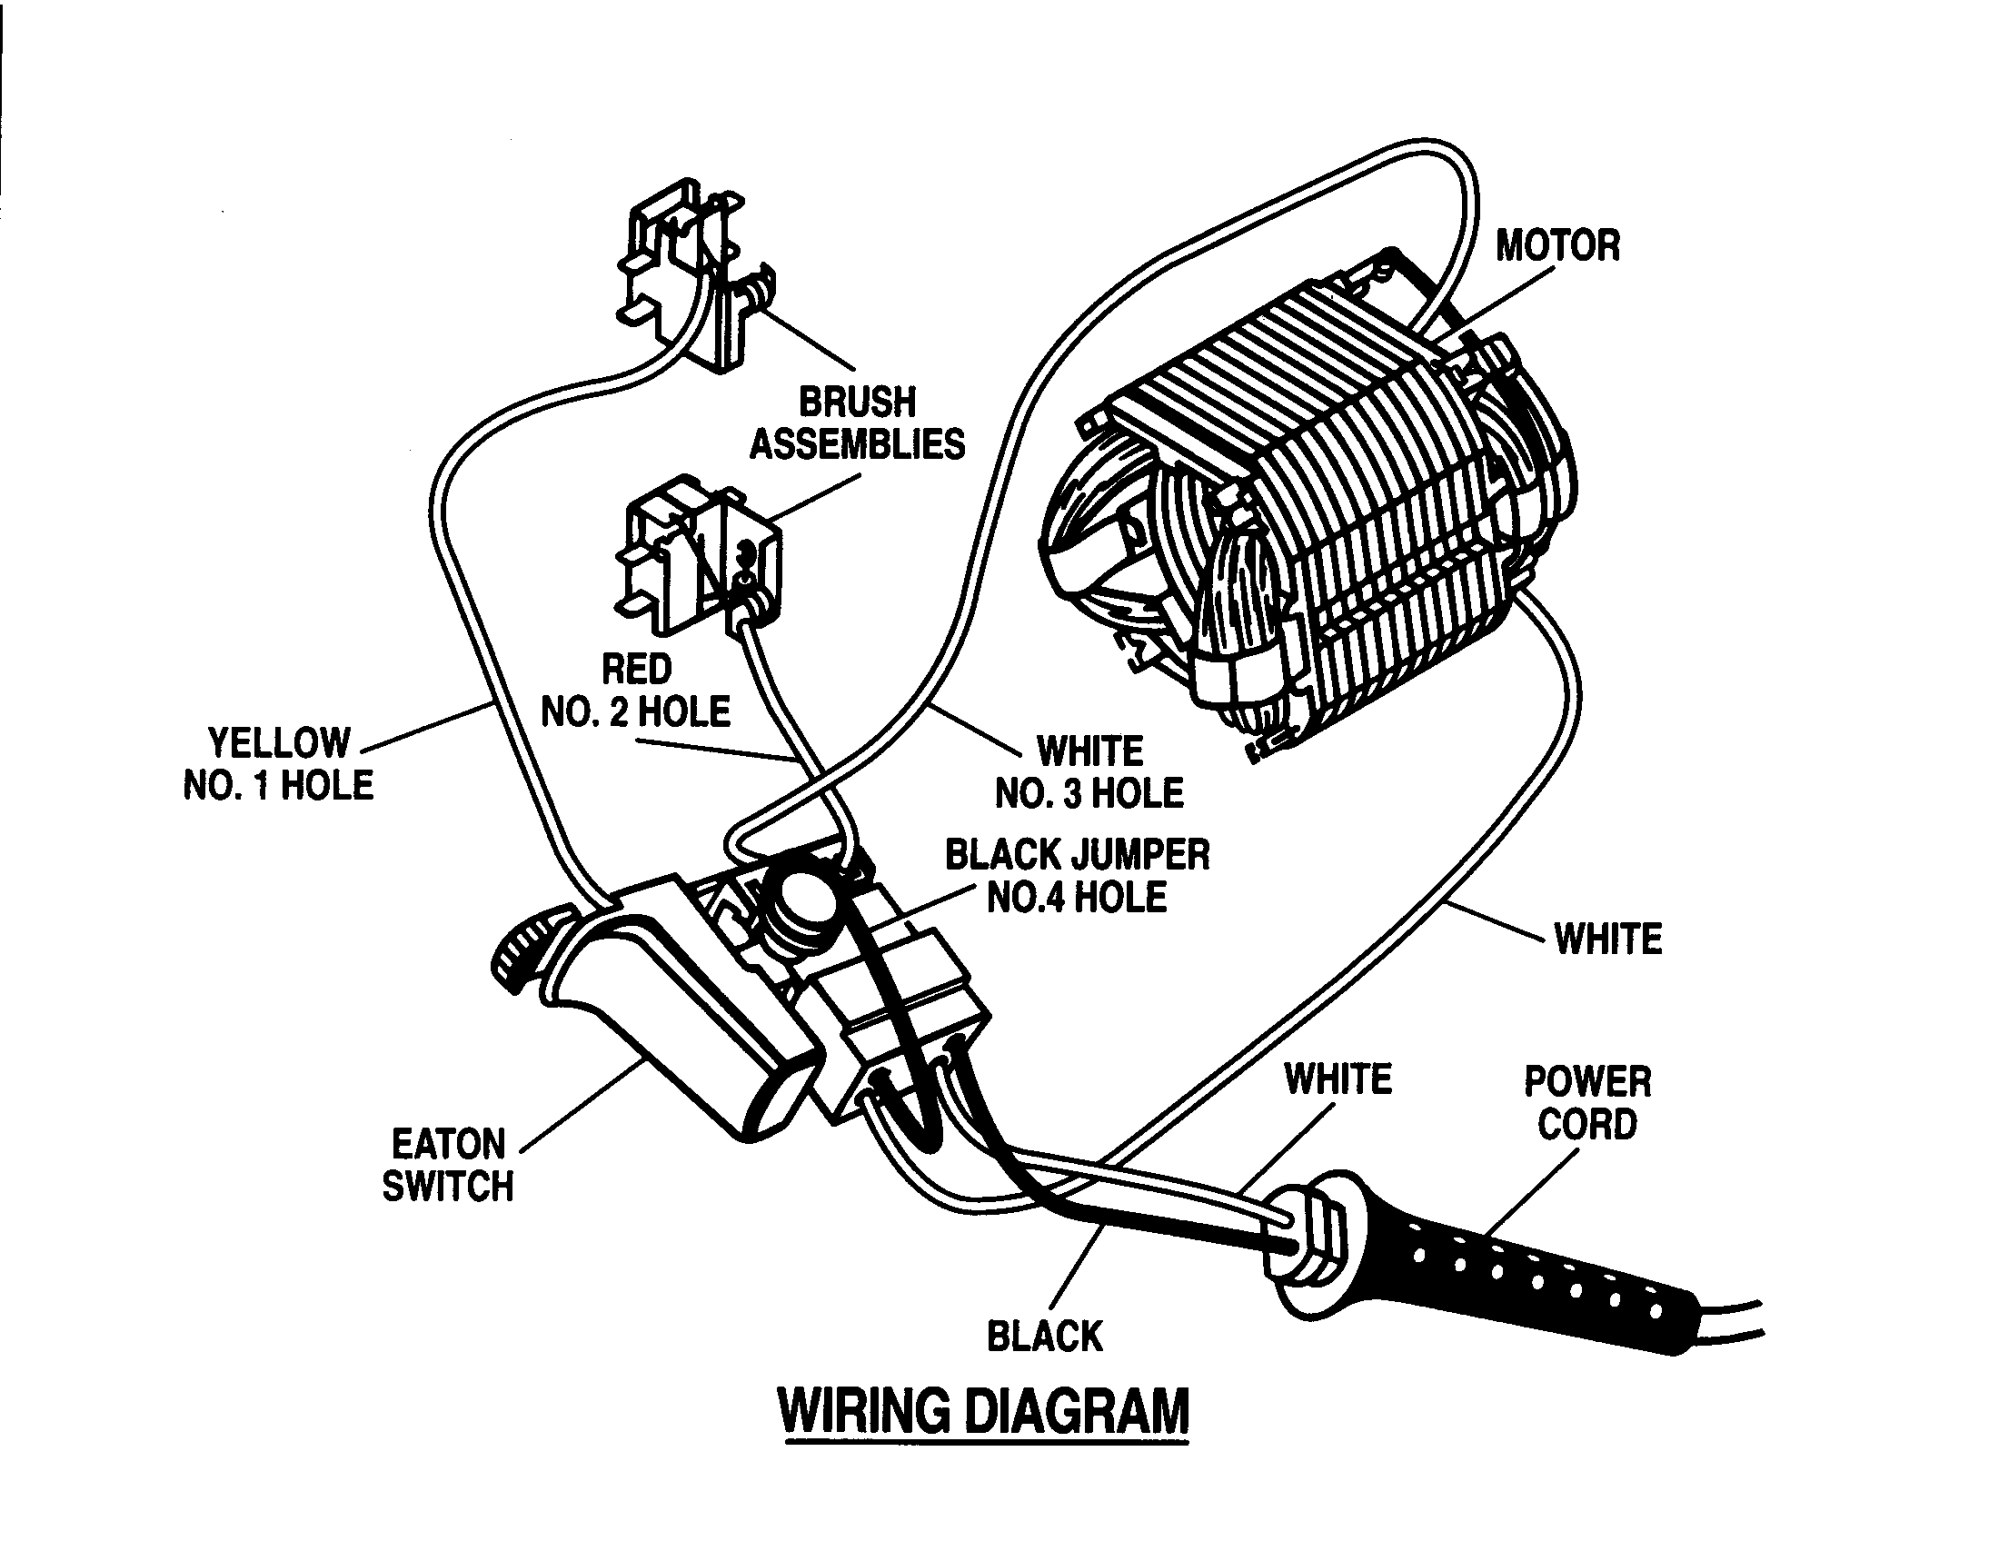 hight resolution of drill wiring diagram everything wiring diagram drill machine wiring diagram drill wiring diagram